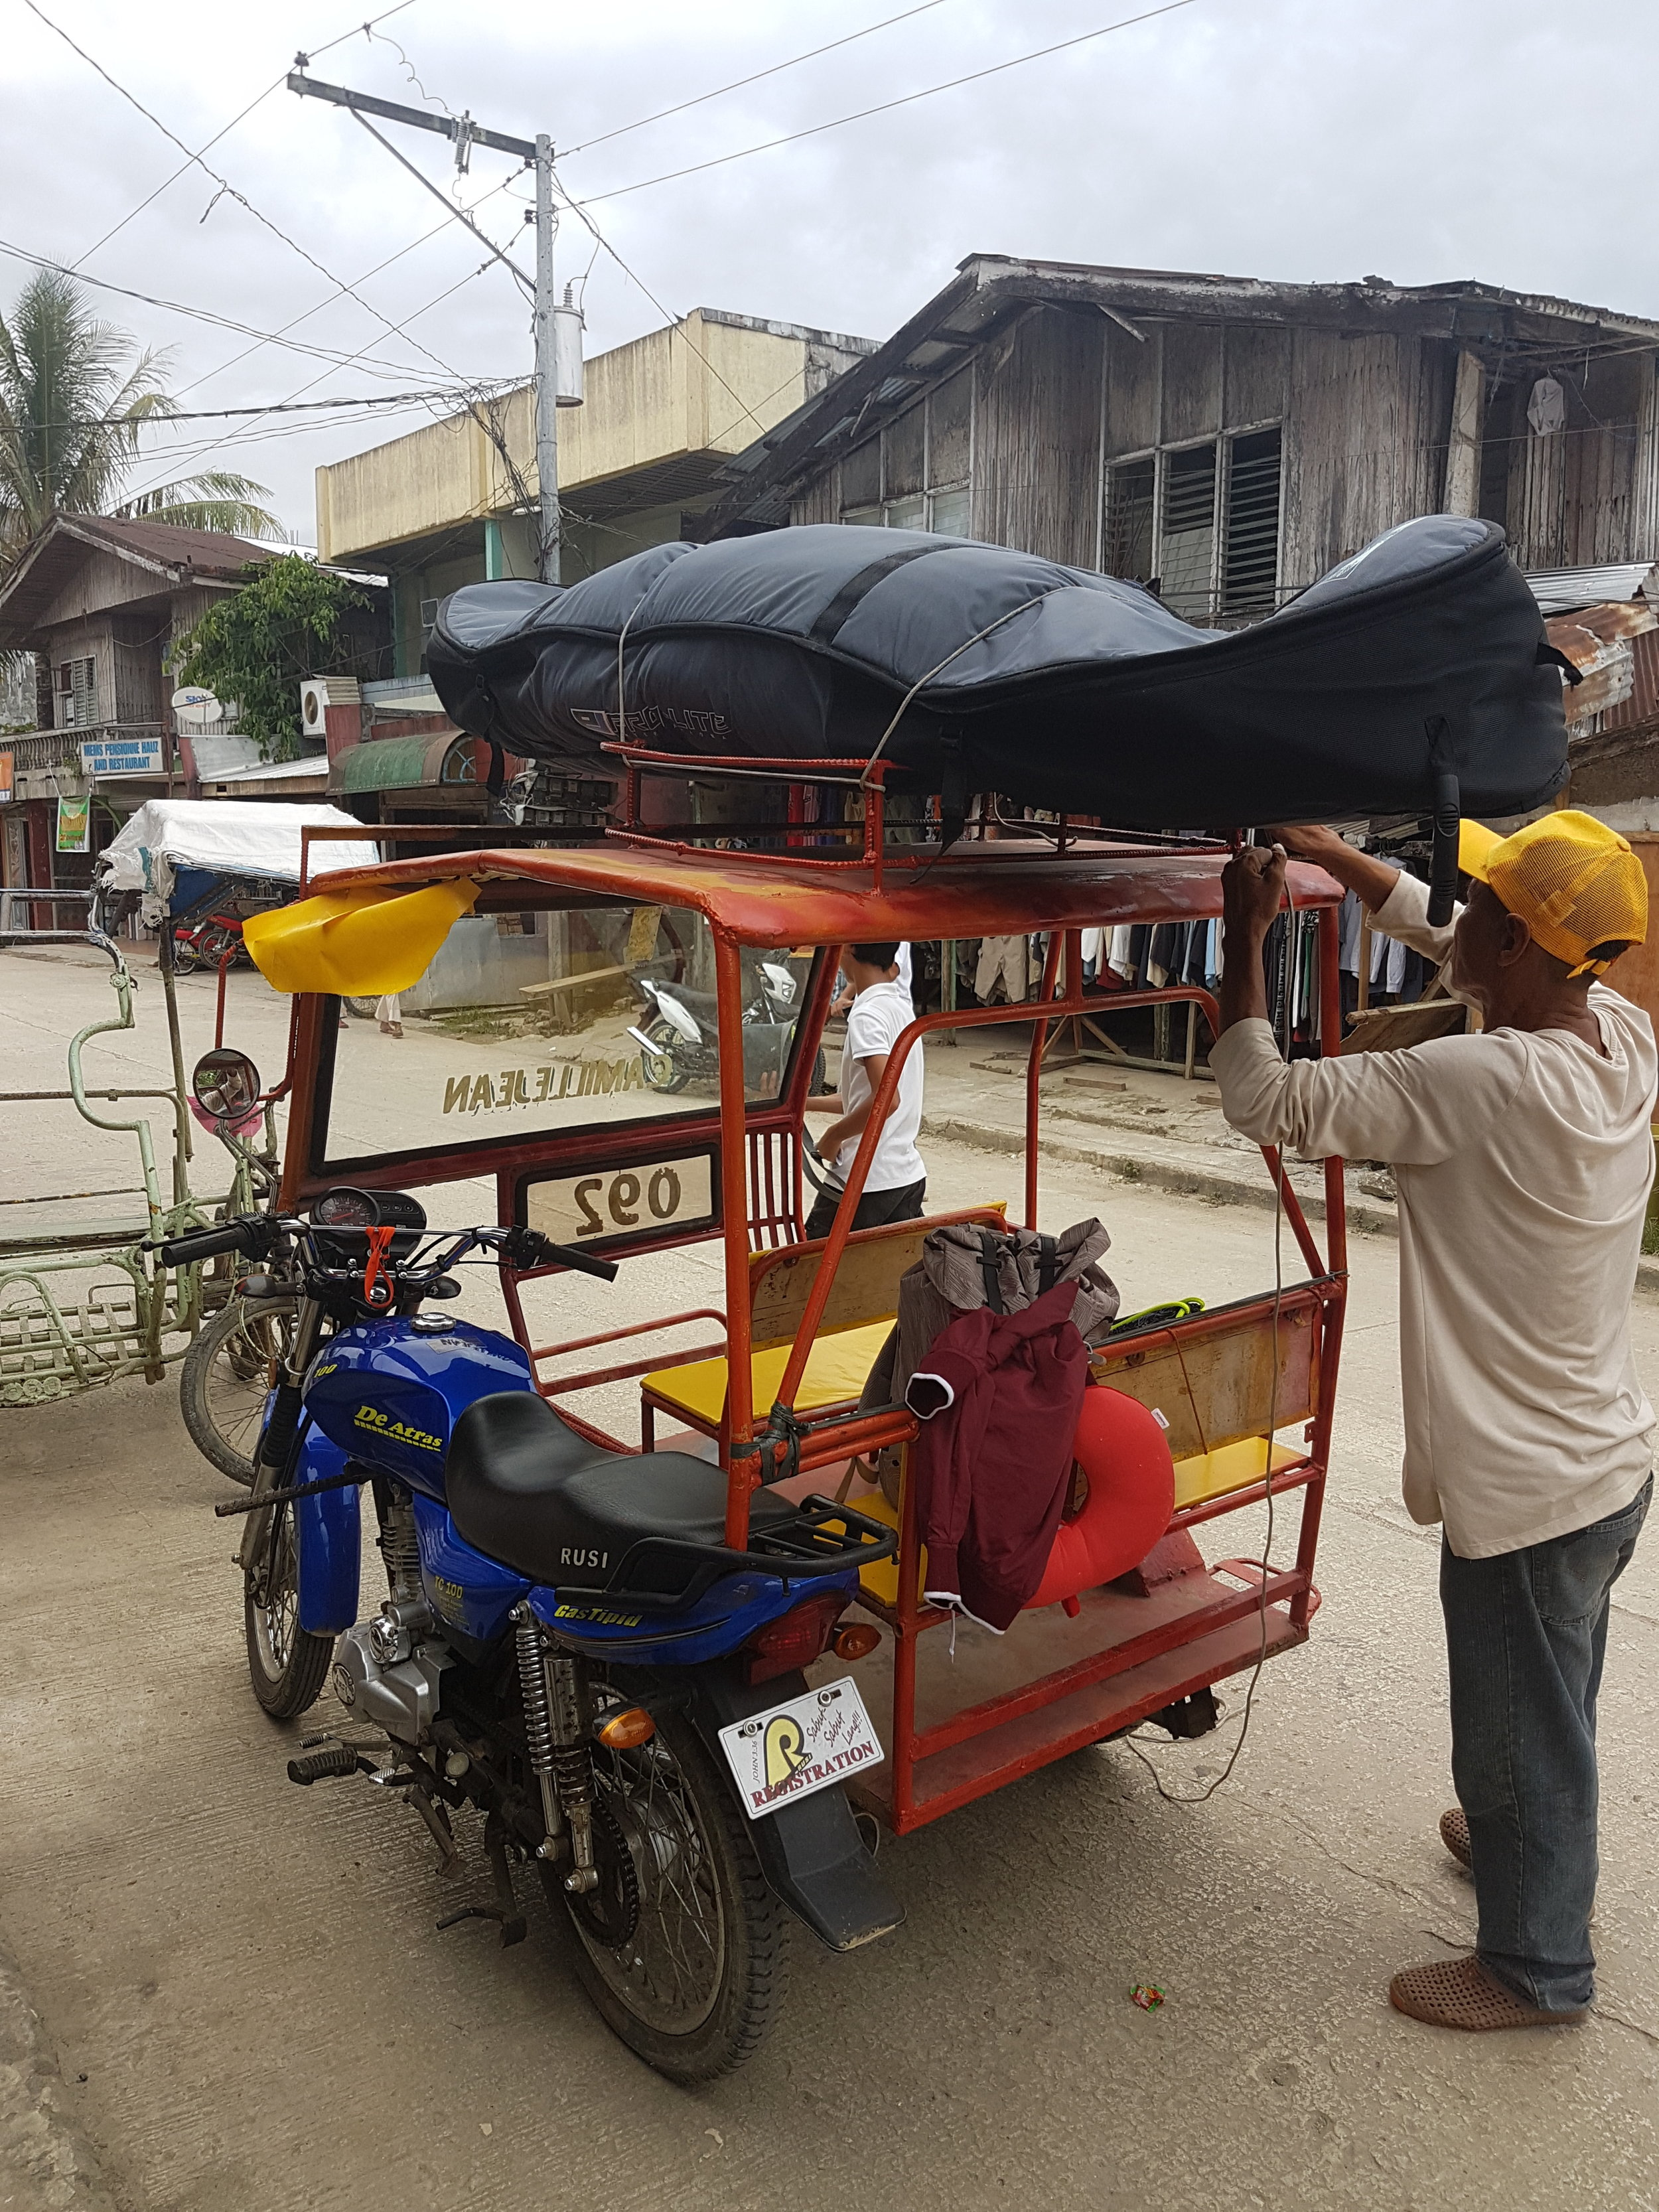 Real struggles of traveling with your surfboard. Taken in Siargao, September 2017.